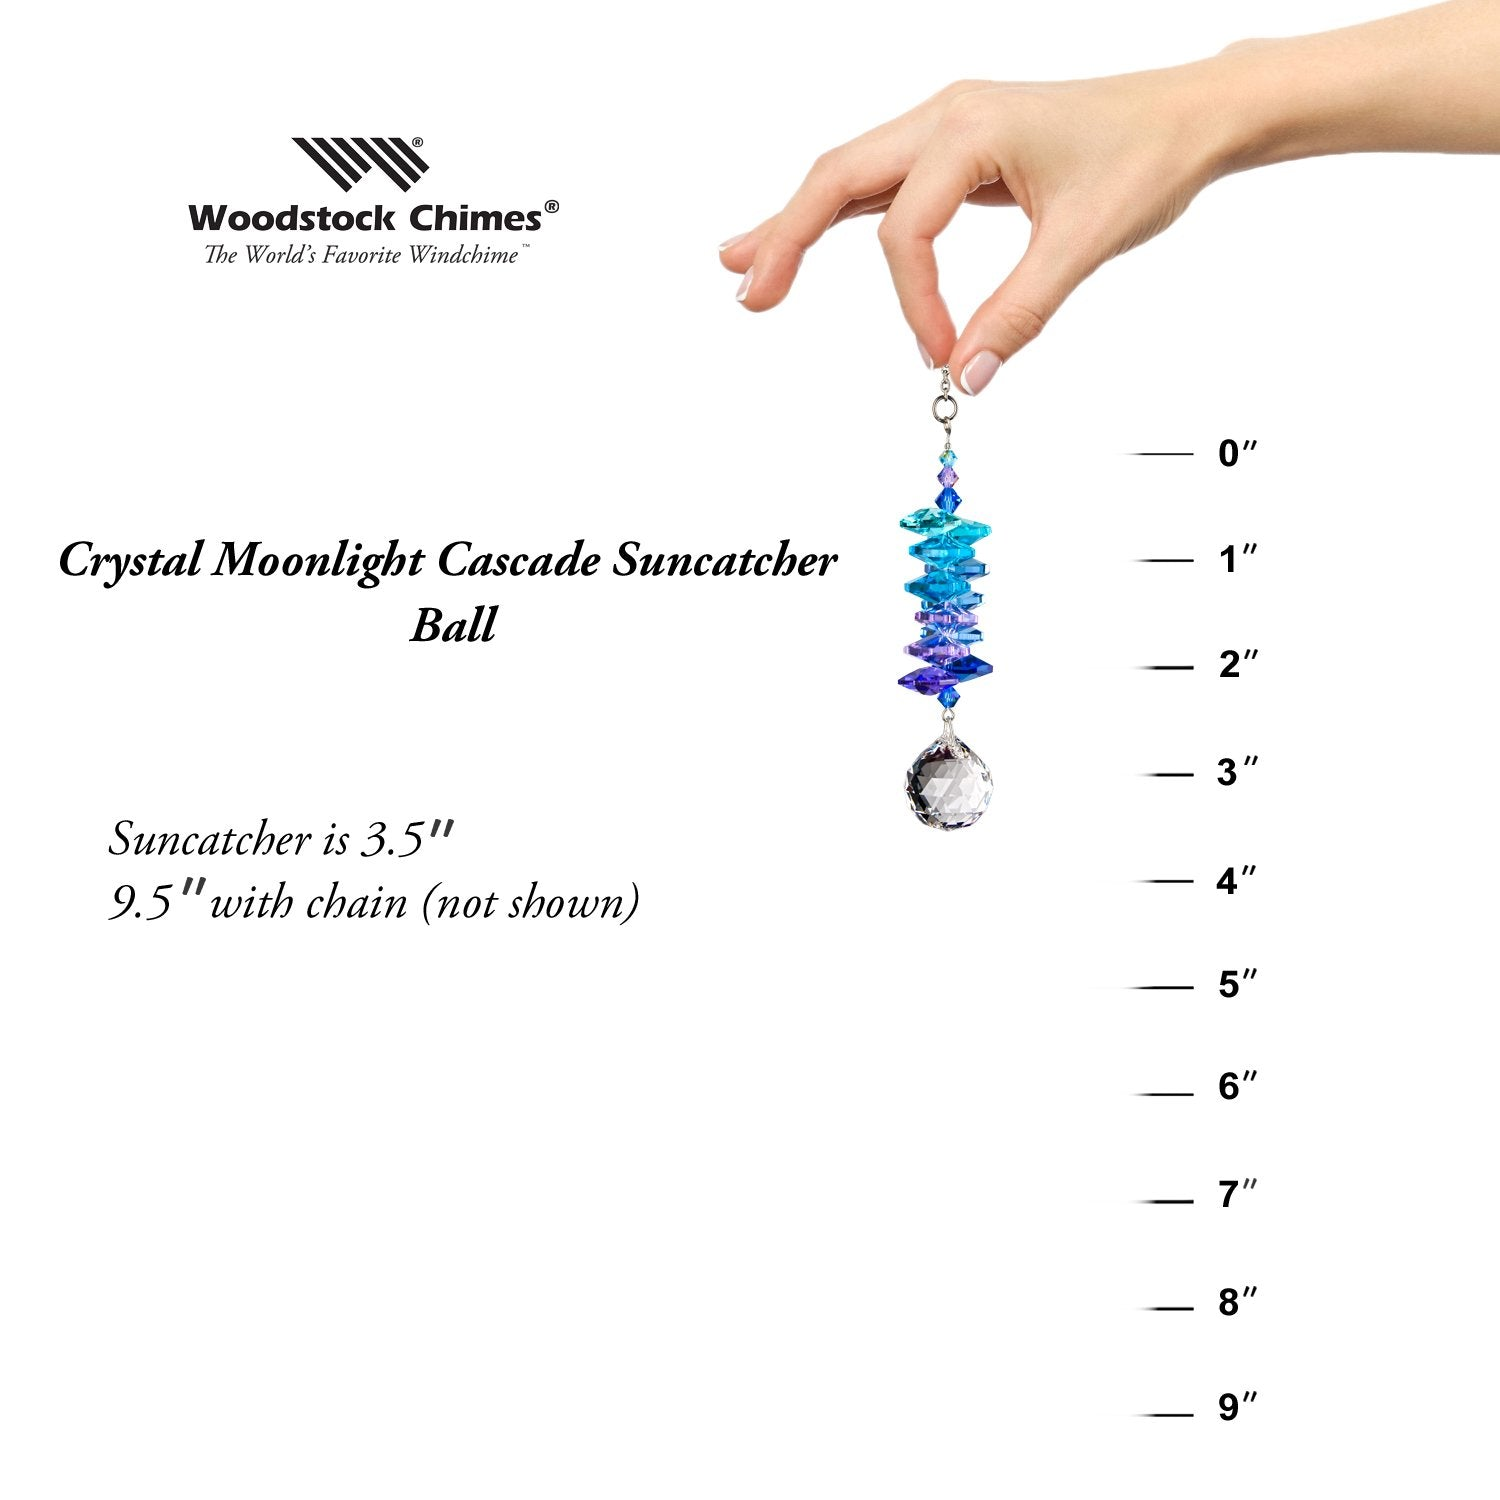 Crystal Moonlight Cascade Suncatcher - Ball proportion image